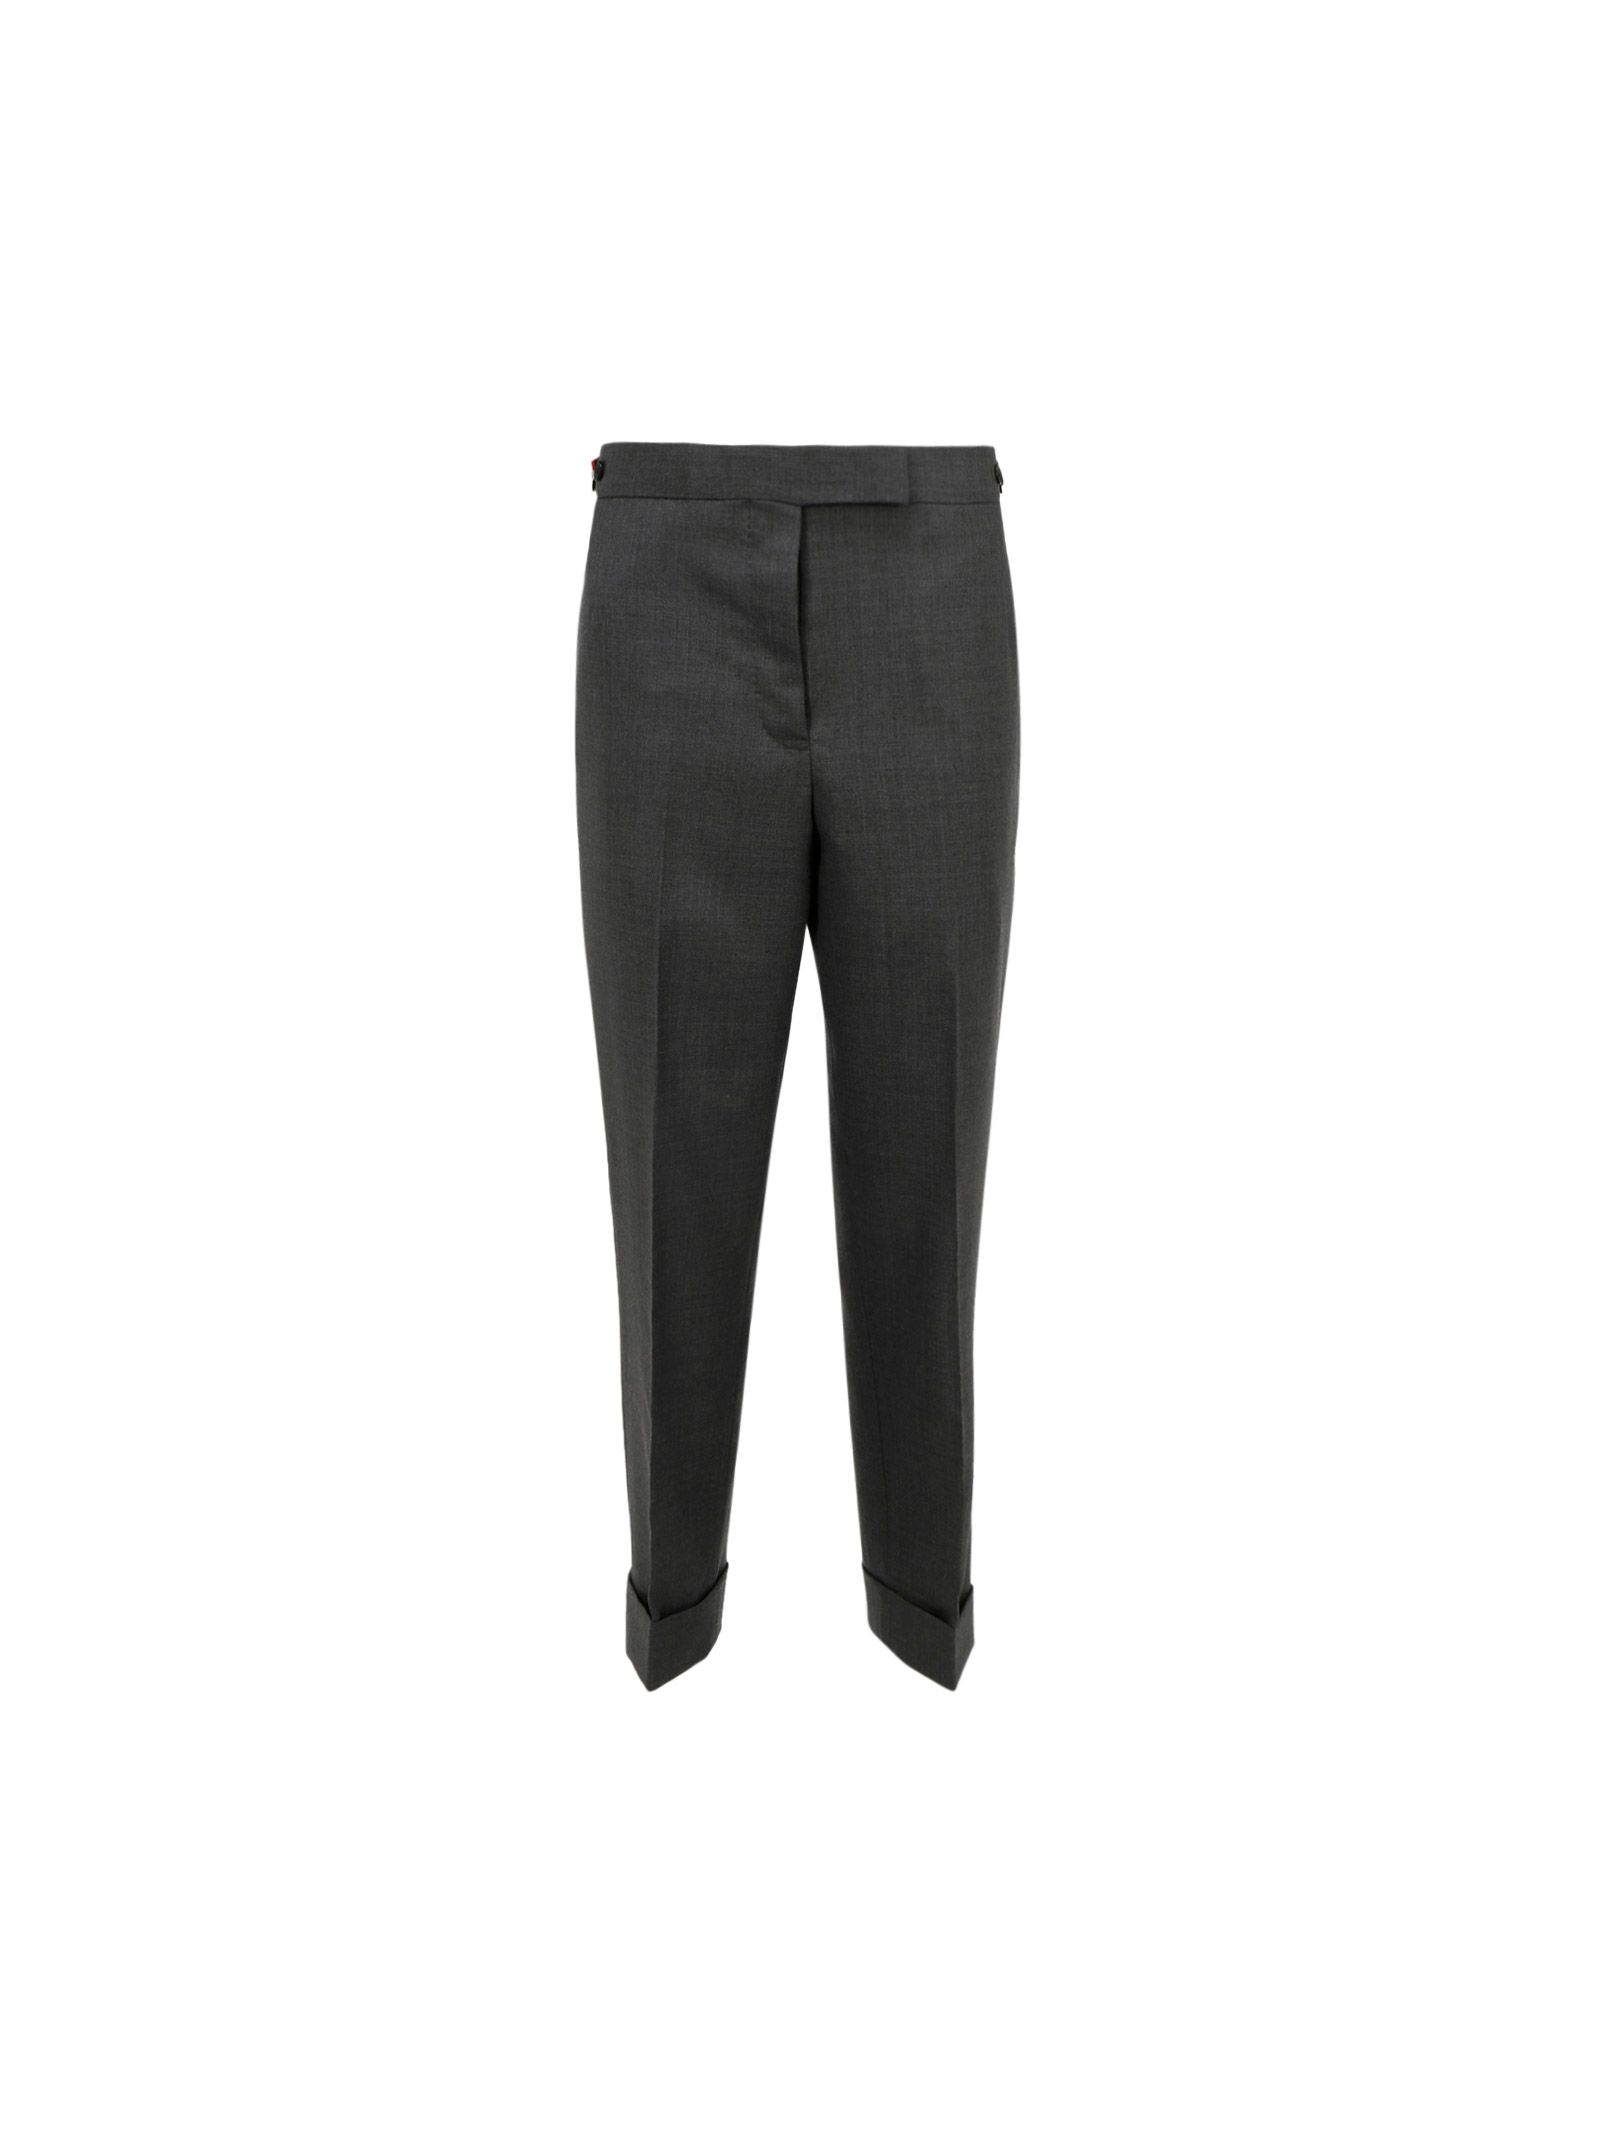 Thom Browne Straight pants THOM BROWNE WOMEN'S FTC392A00626035 GREY OTHER MATERIALS PANTS